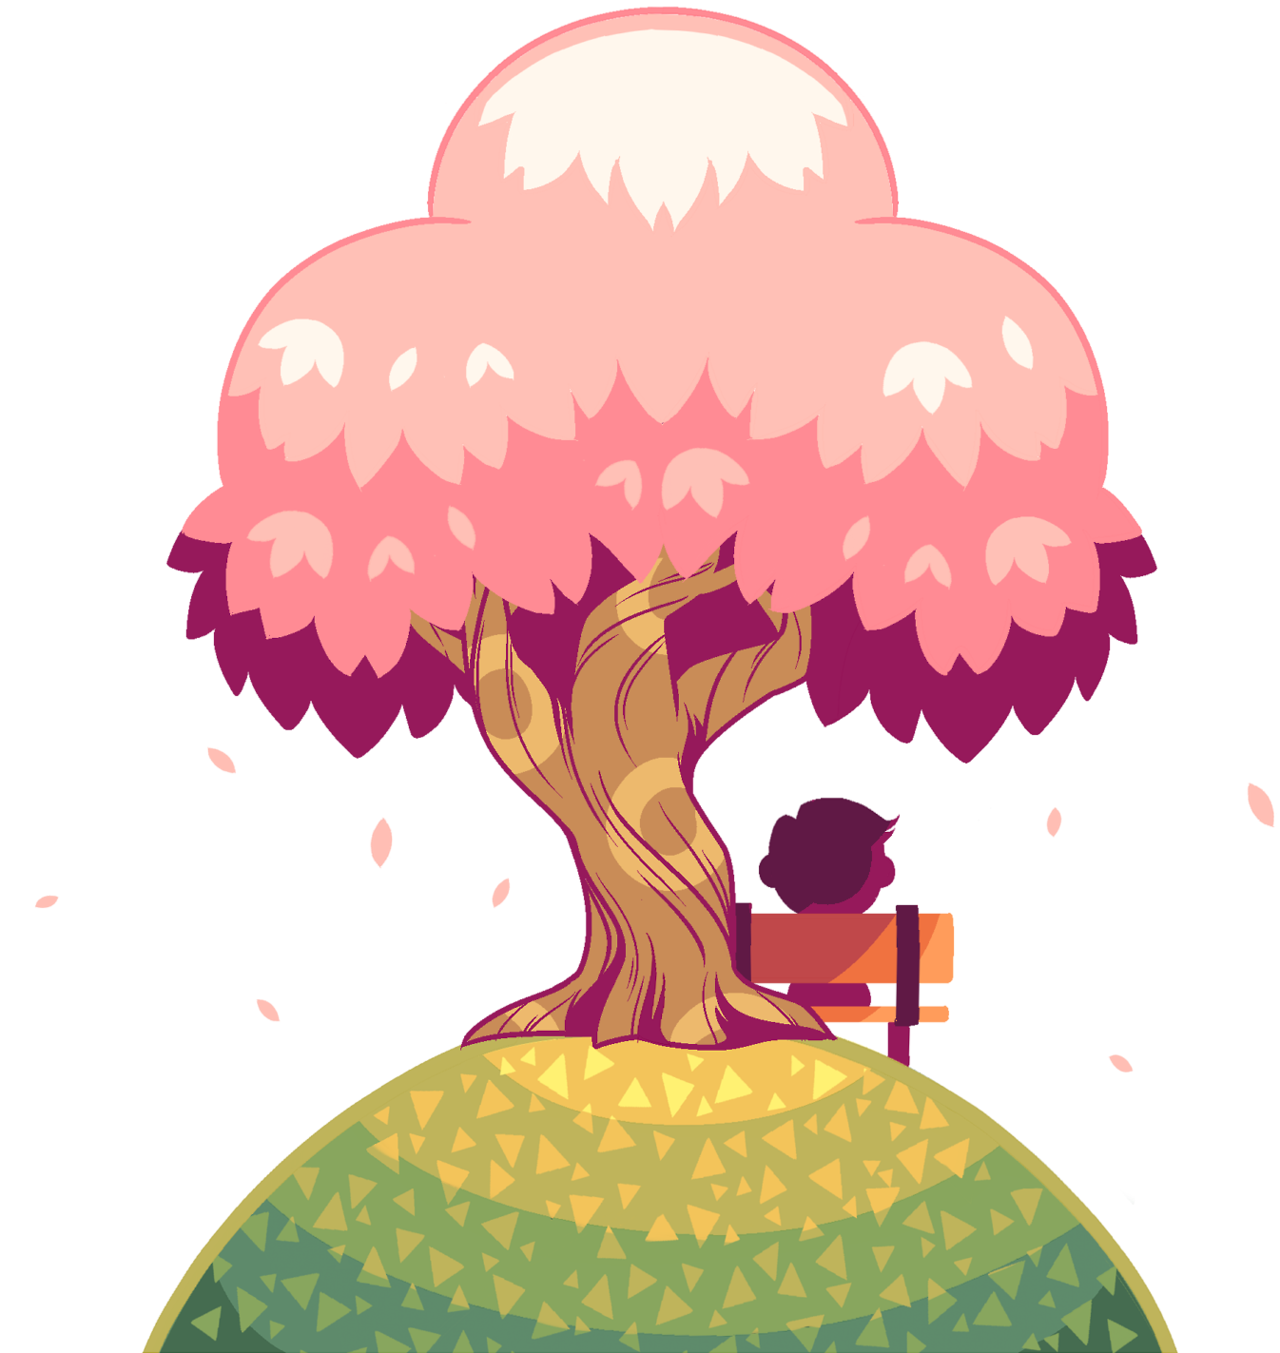 Little Transparent Animal Crossing Doodle For Stress Relief Animal Crossing Animal Crossing Qr Animal Crossing Wild World